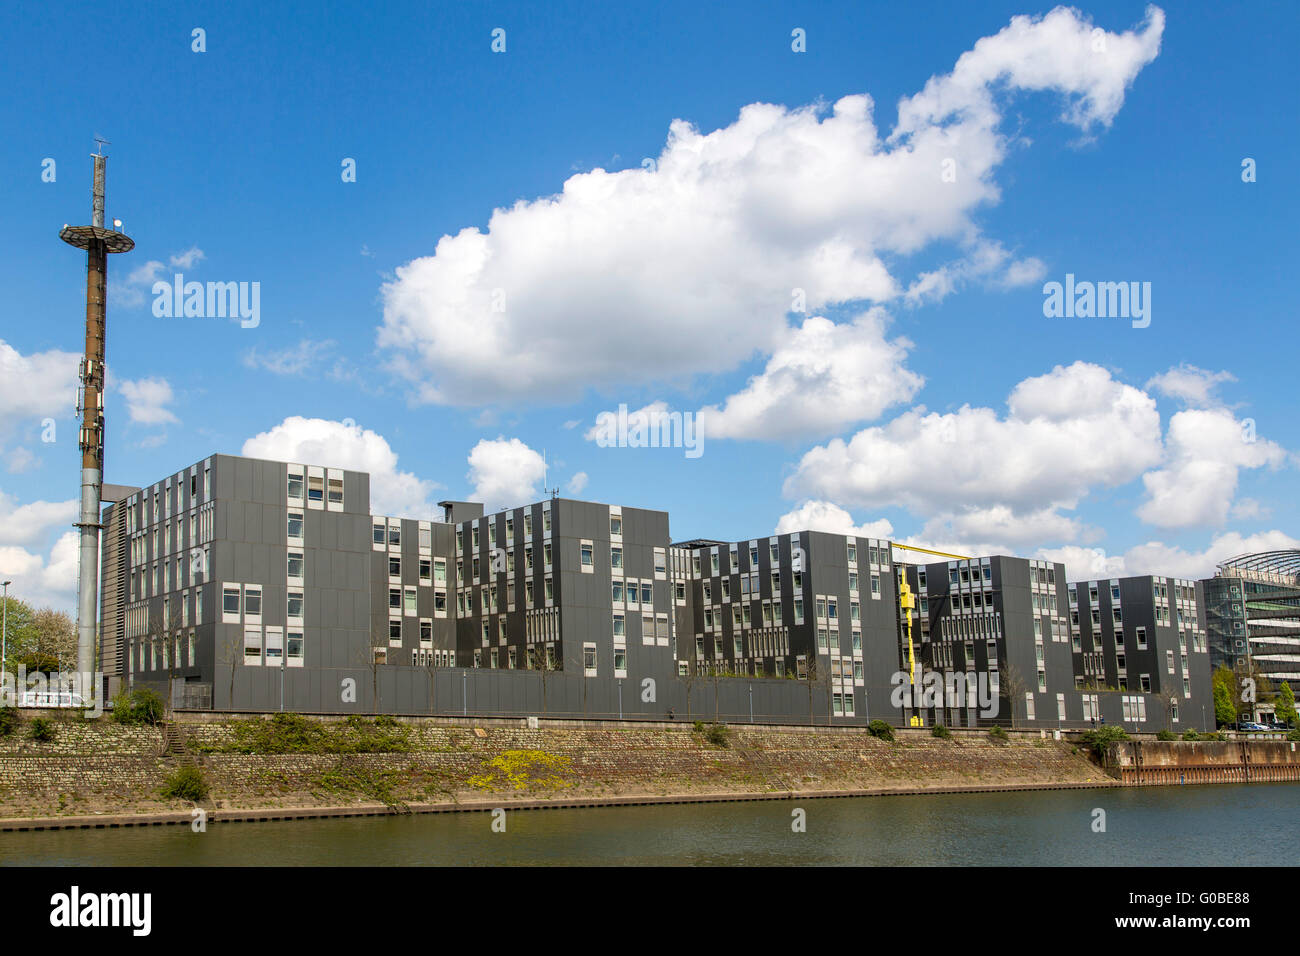 The Innenhafen, Inner Harbor Duisburg, was a central harbor at river Rhine, transformed in a cultural, office and - Stock Image